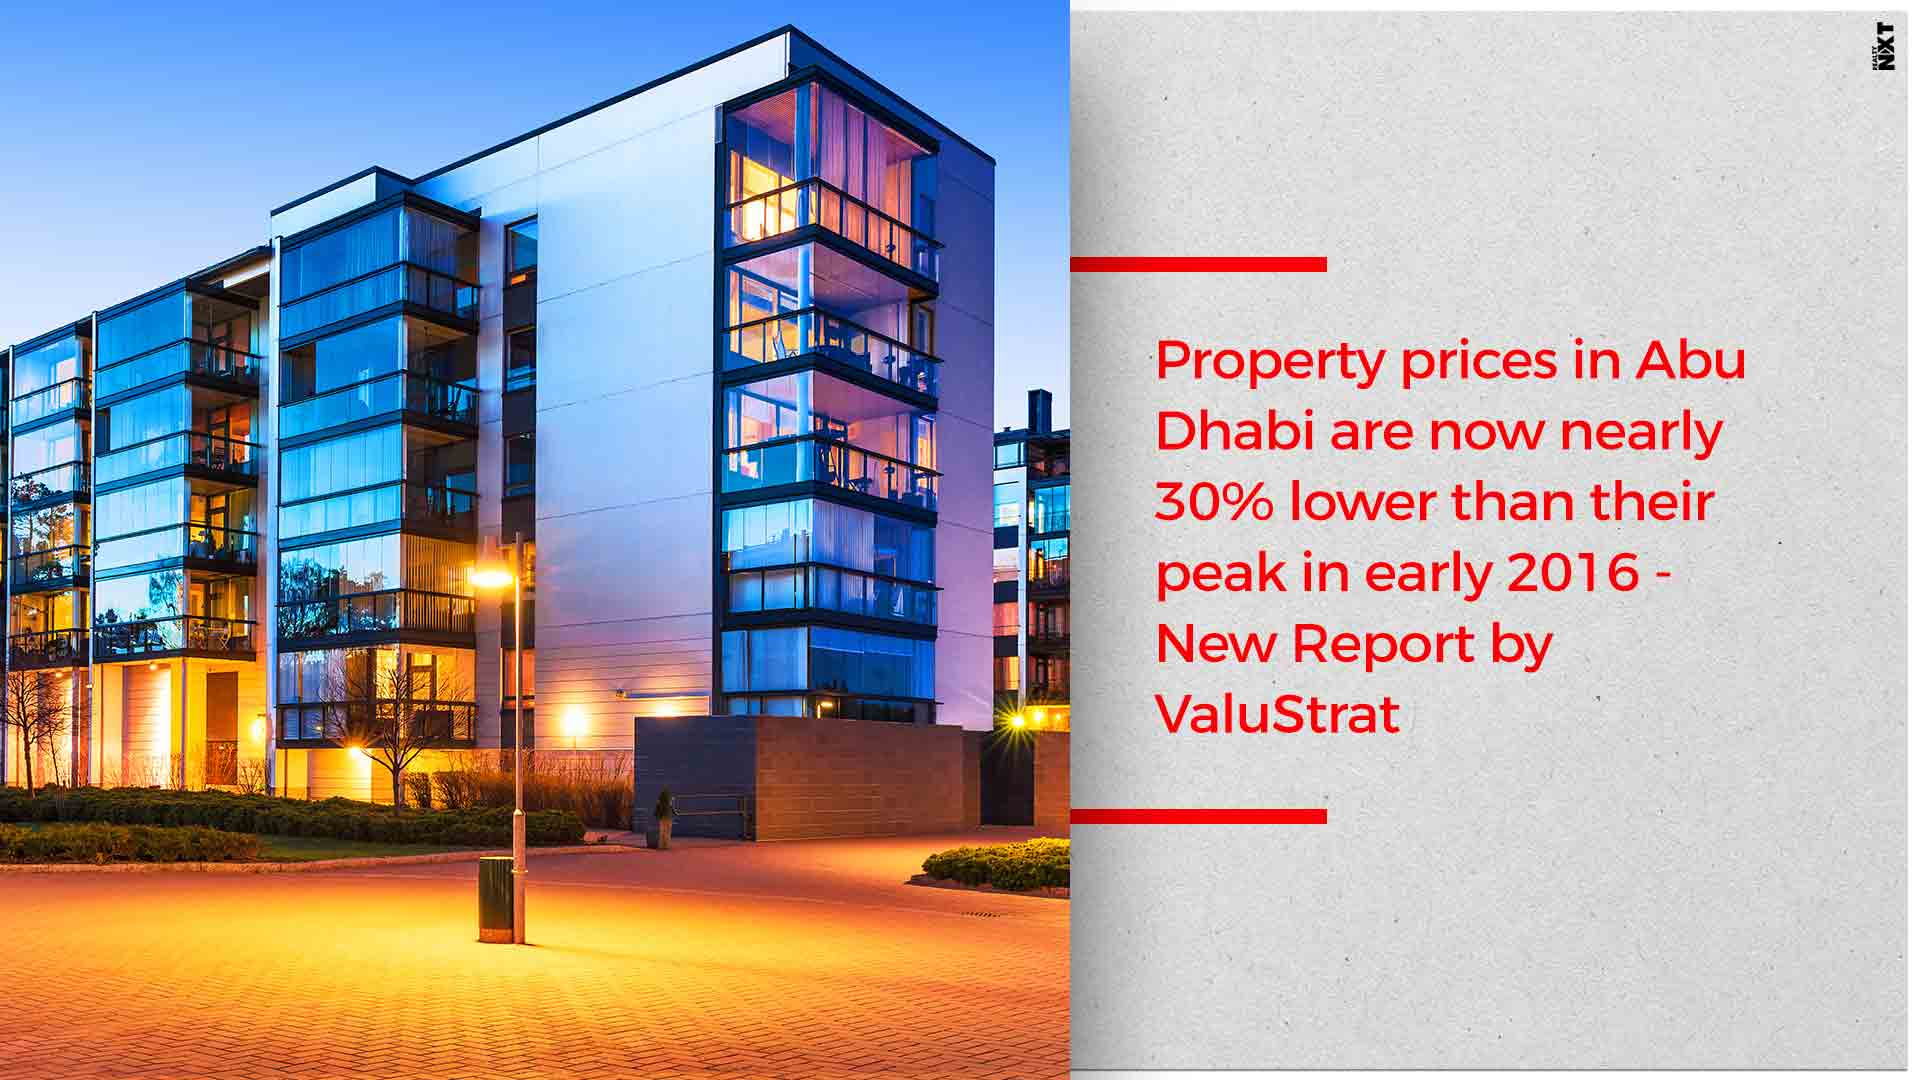 Property prices in Abu Dhabi are now nearly 30% lower than their peak in early 2016 - New Report by ValuStrat